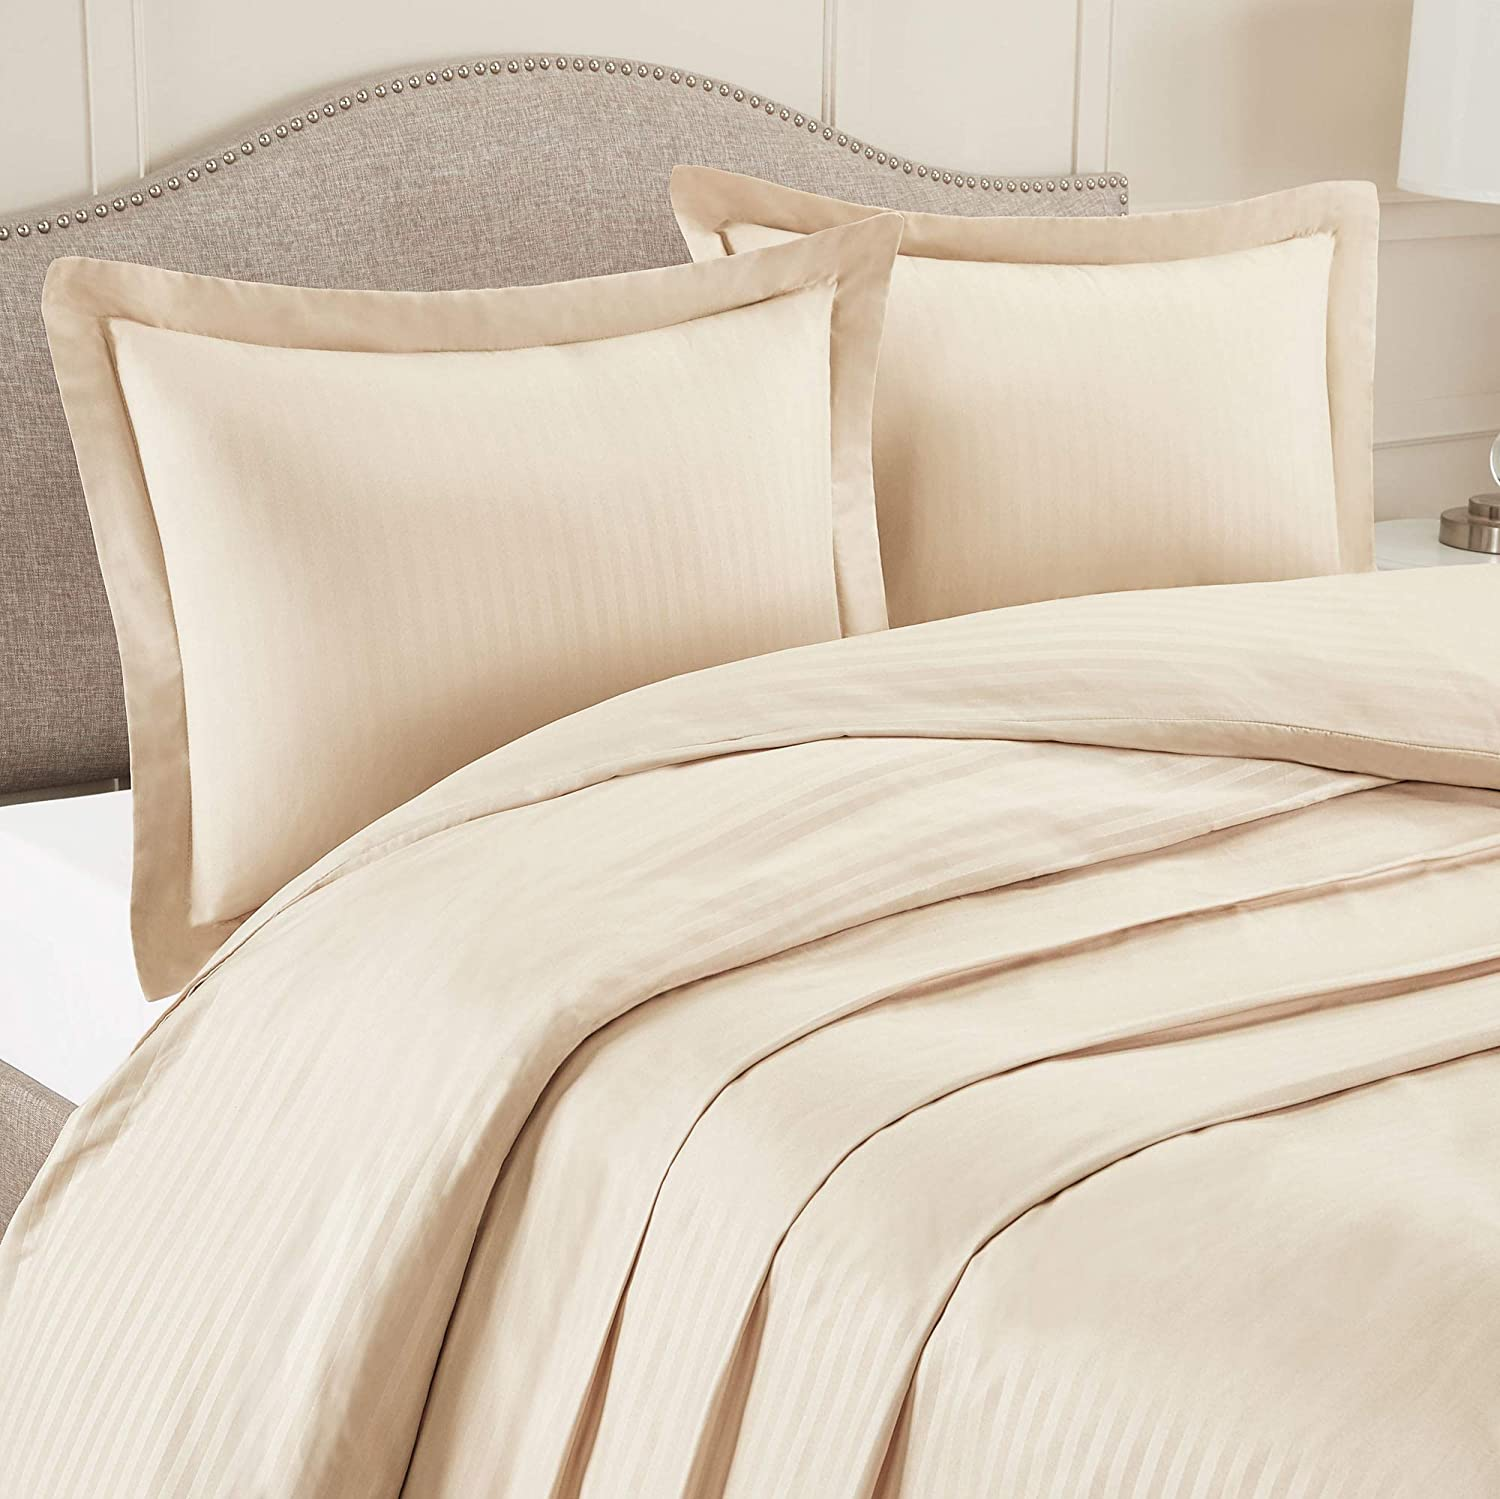 Cream Luxury Microfiber Duvet Cover with 1 Pillow Sham Twin 14 Tailored Drop Bed Skirt Nestl Bedding Damask Dobby Stripe Bed Skirt with Duvet Cover 3 Piece Set 8 Bed Skirt Pins Included